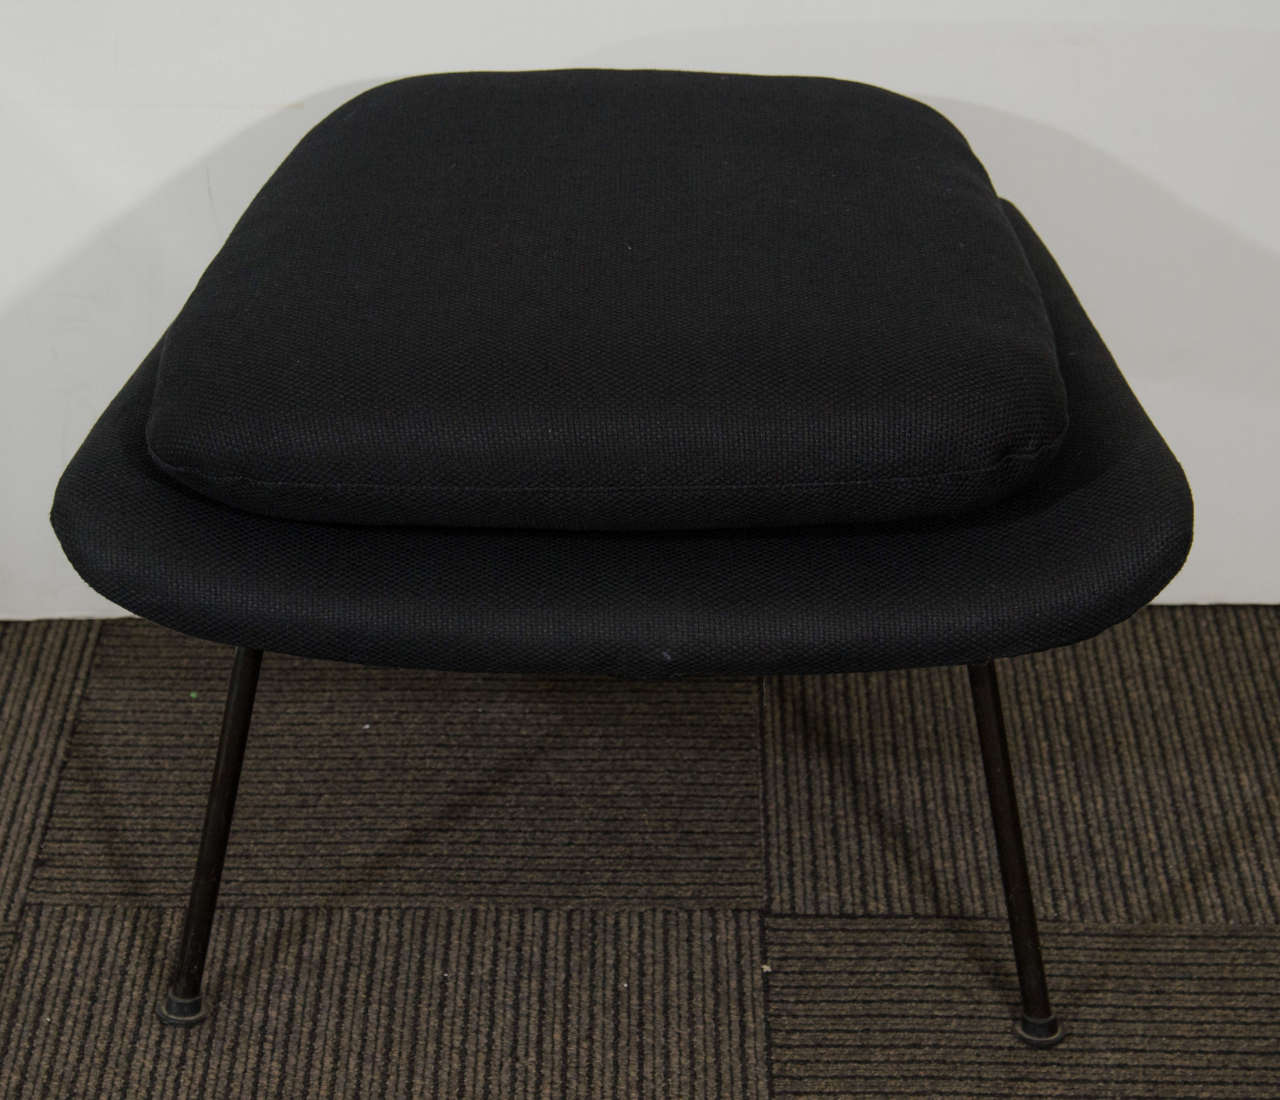 Midcentury womb chair and ottoman by eero saarinen for knoll at 1stdibs - Vintage womb chair for sale ...